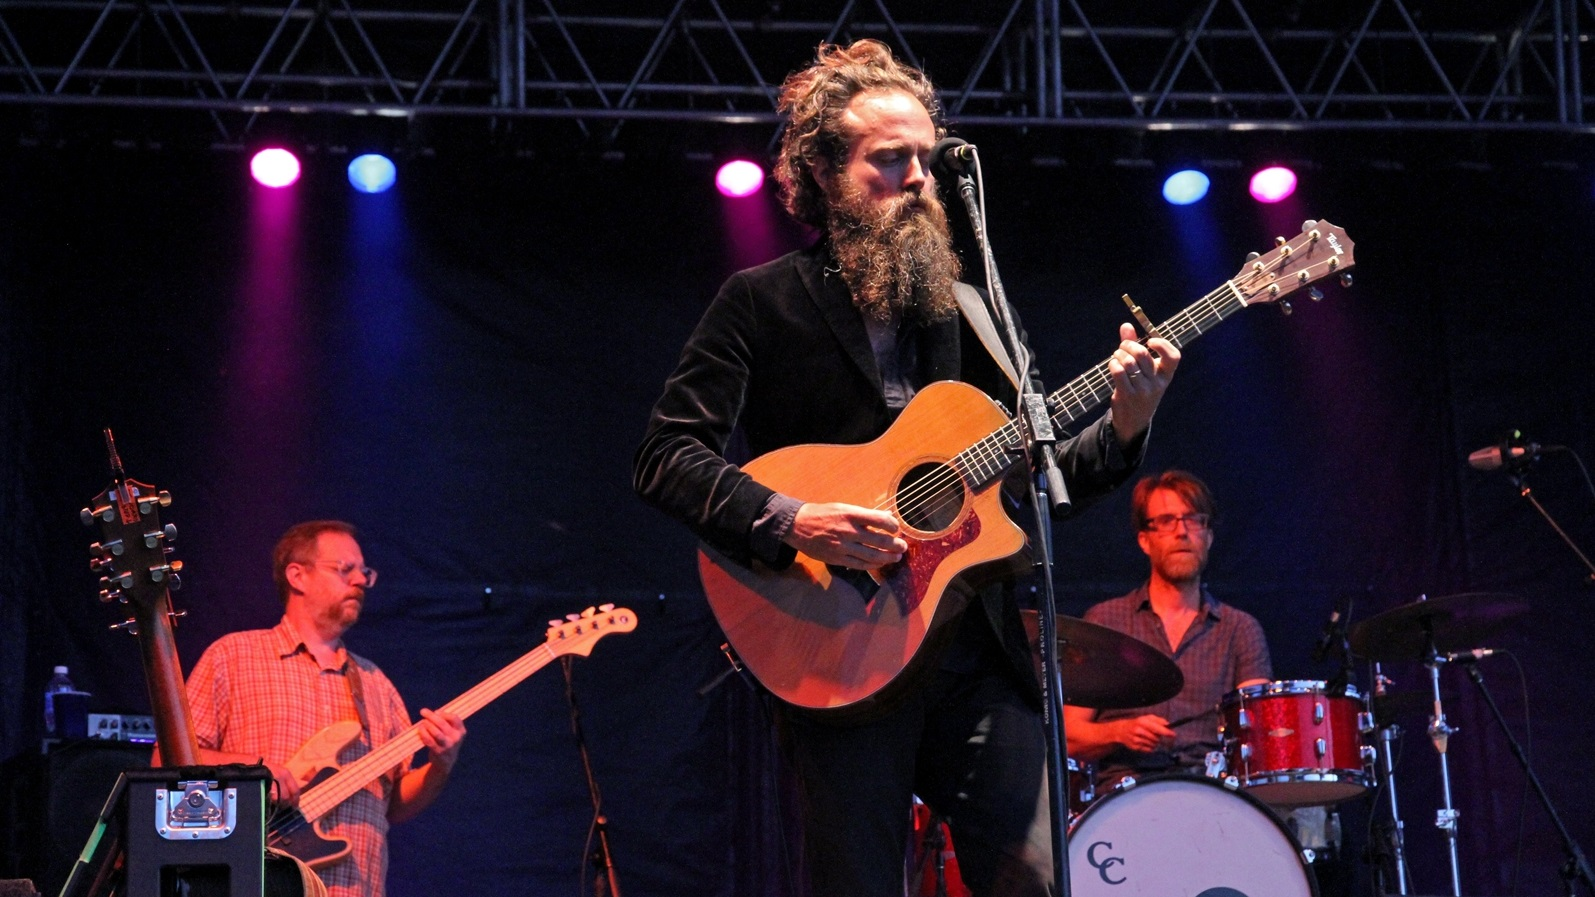 Sam Beam of Iron and Wine was one of the two co-headliners at Canalside Free Thursdays. (Erica Morano/Special to The News)